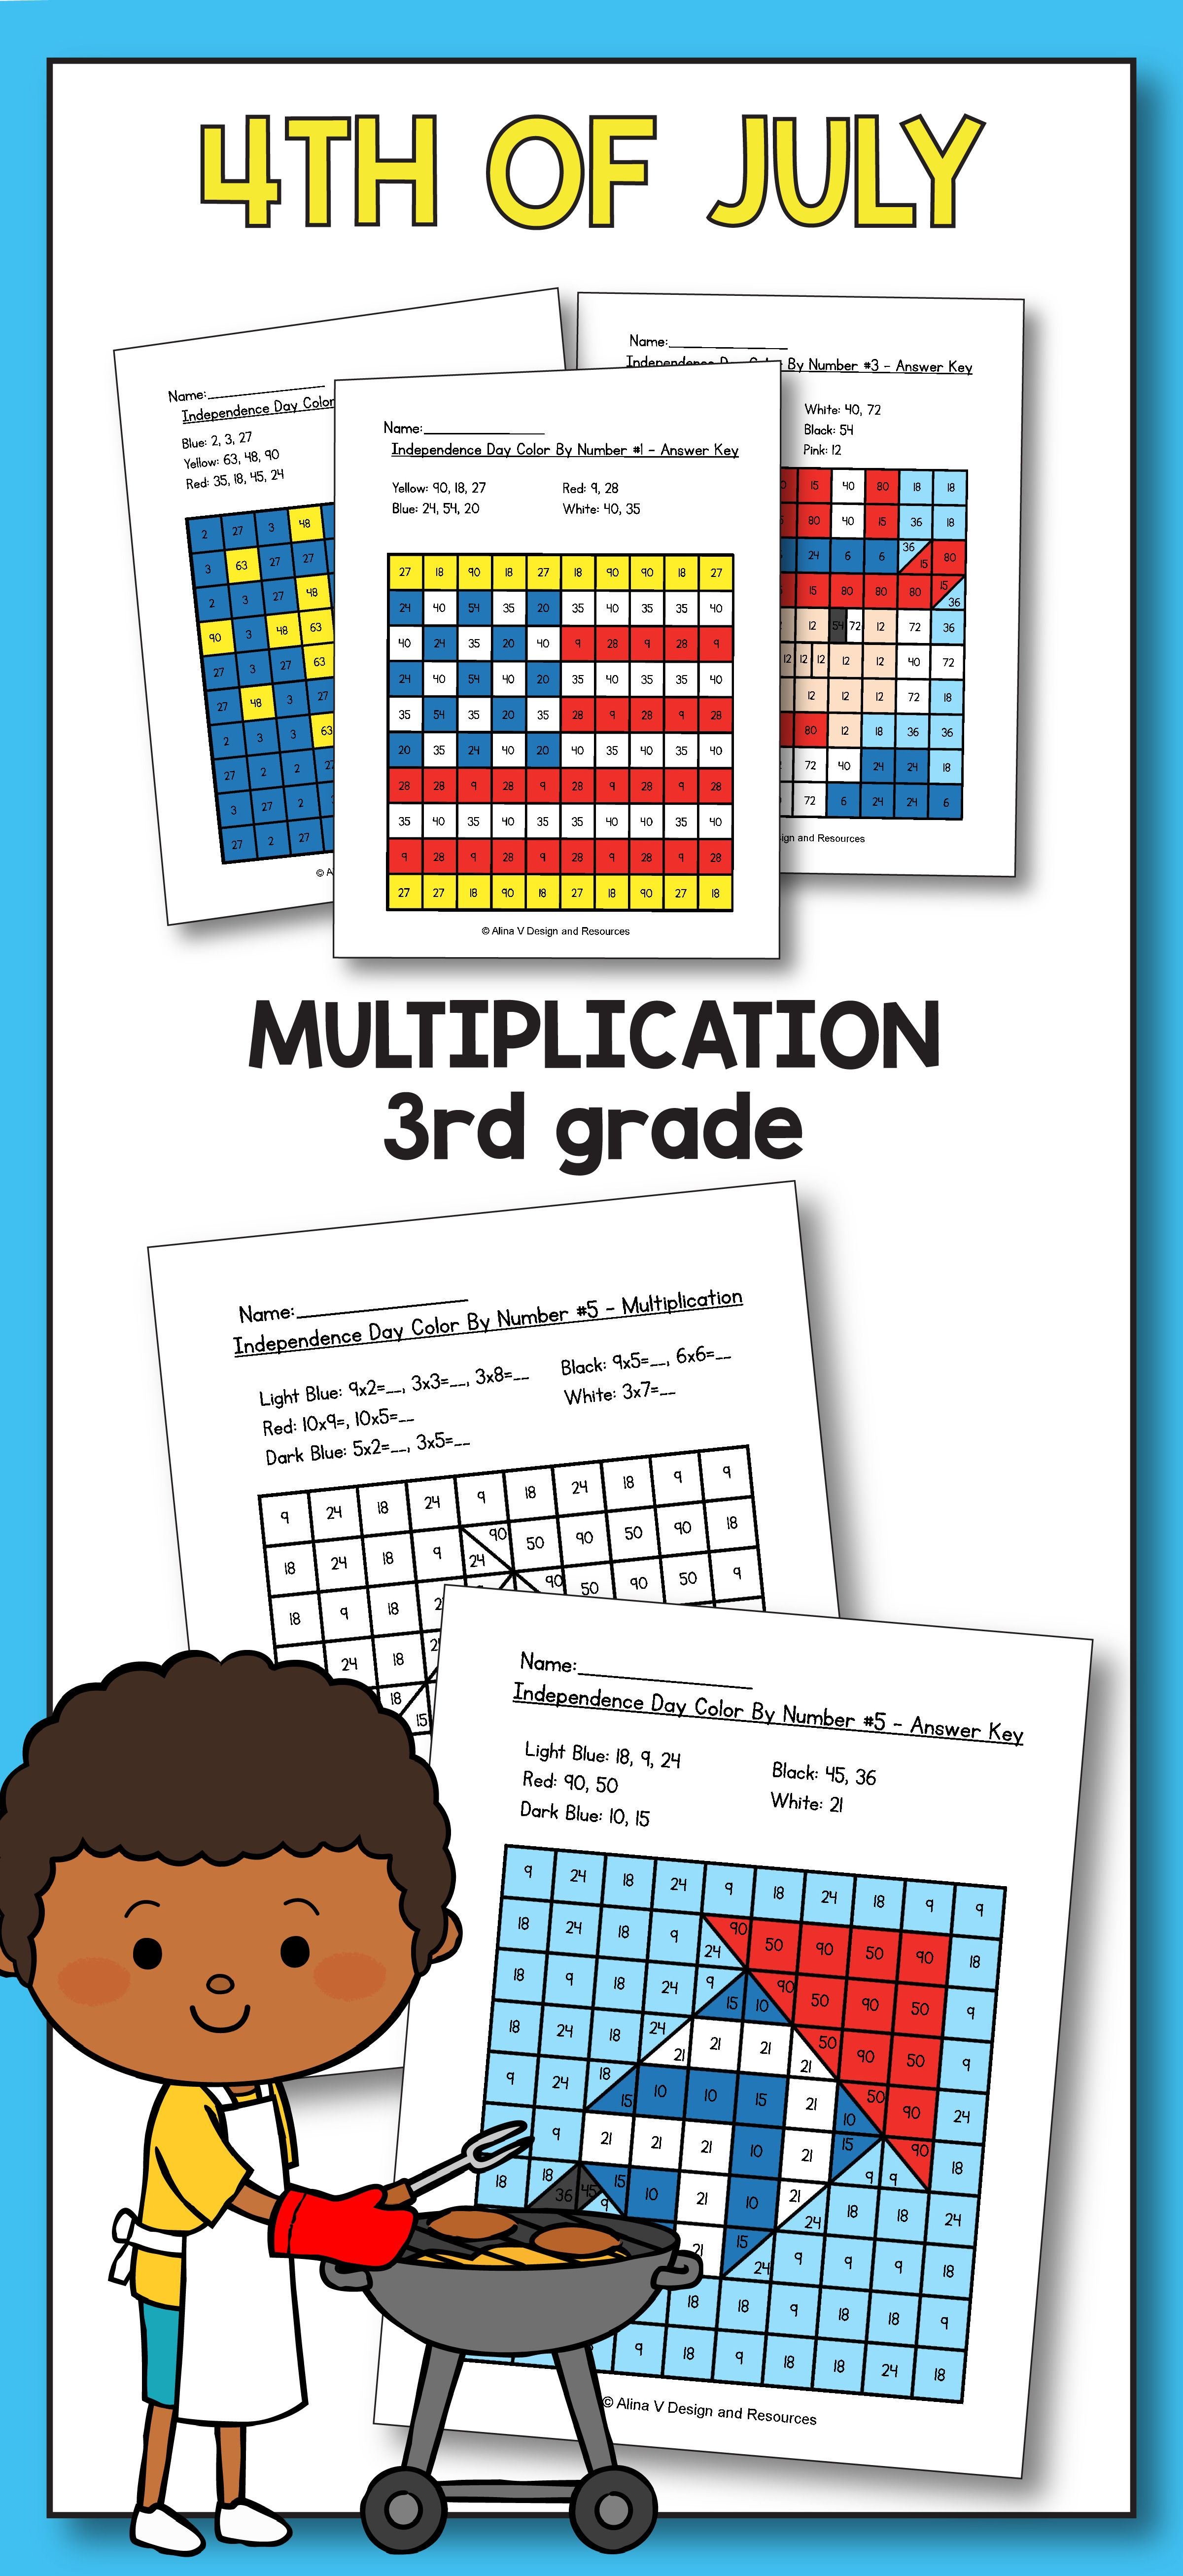 Constitution Day Activities For 3rd Grade